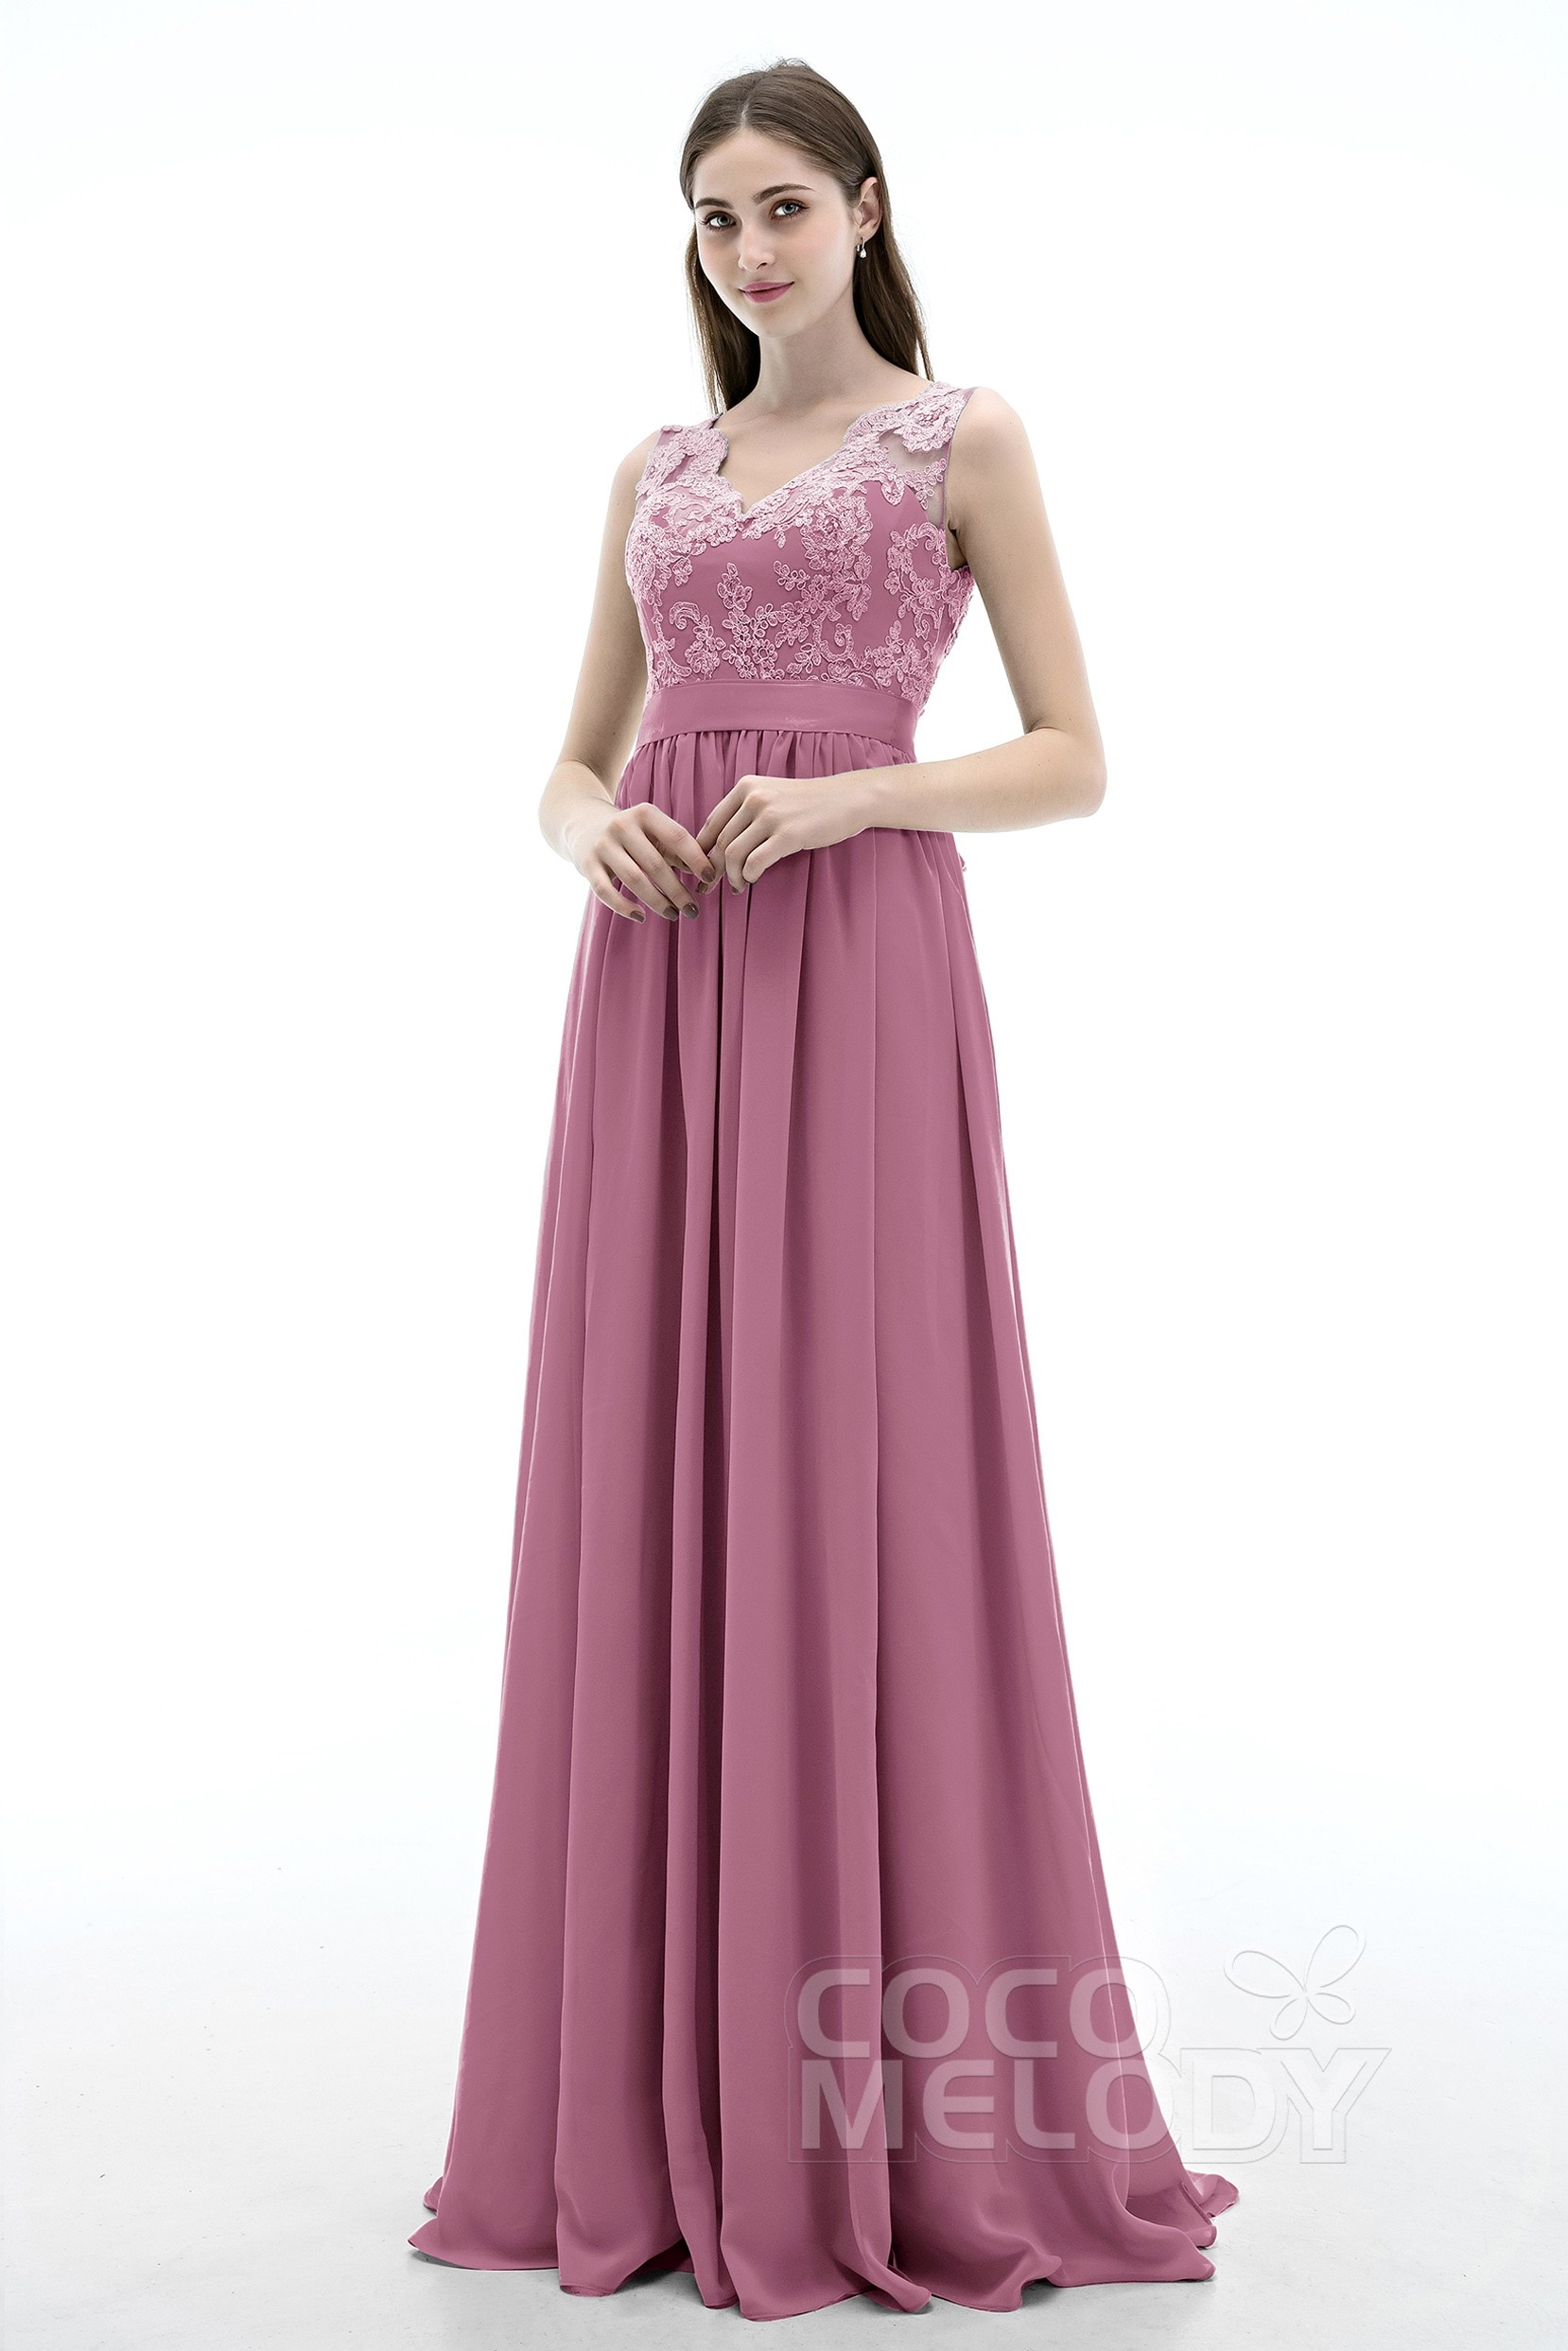 Bridesmaid dresses sale cocomelody sheath column v neck natural sweep brush train chiffon sleeveless open back bridesmaid ombrellifo Gallery